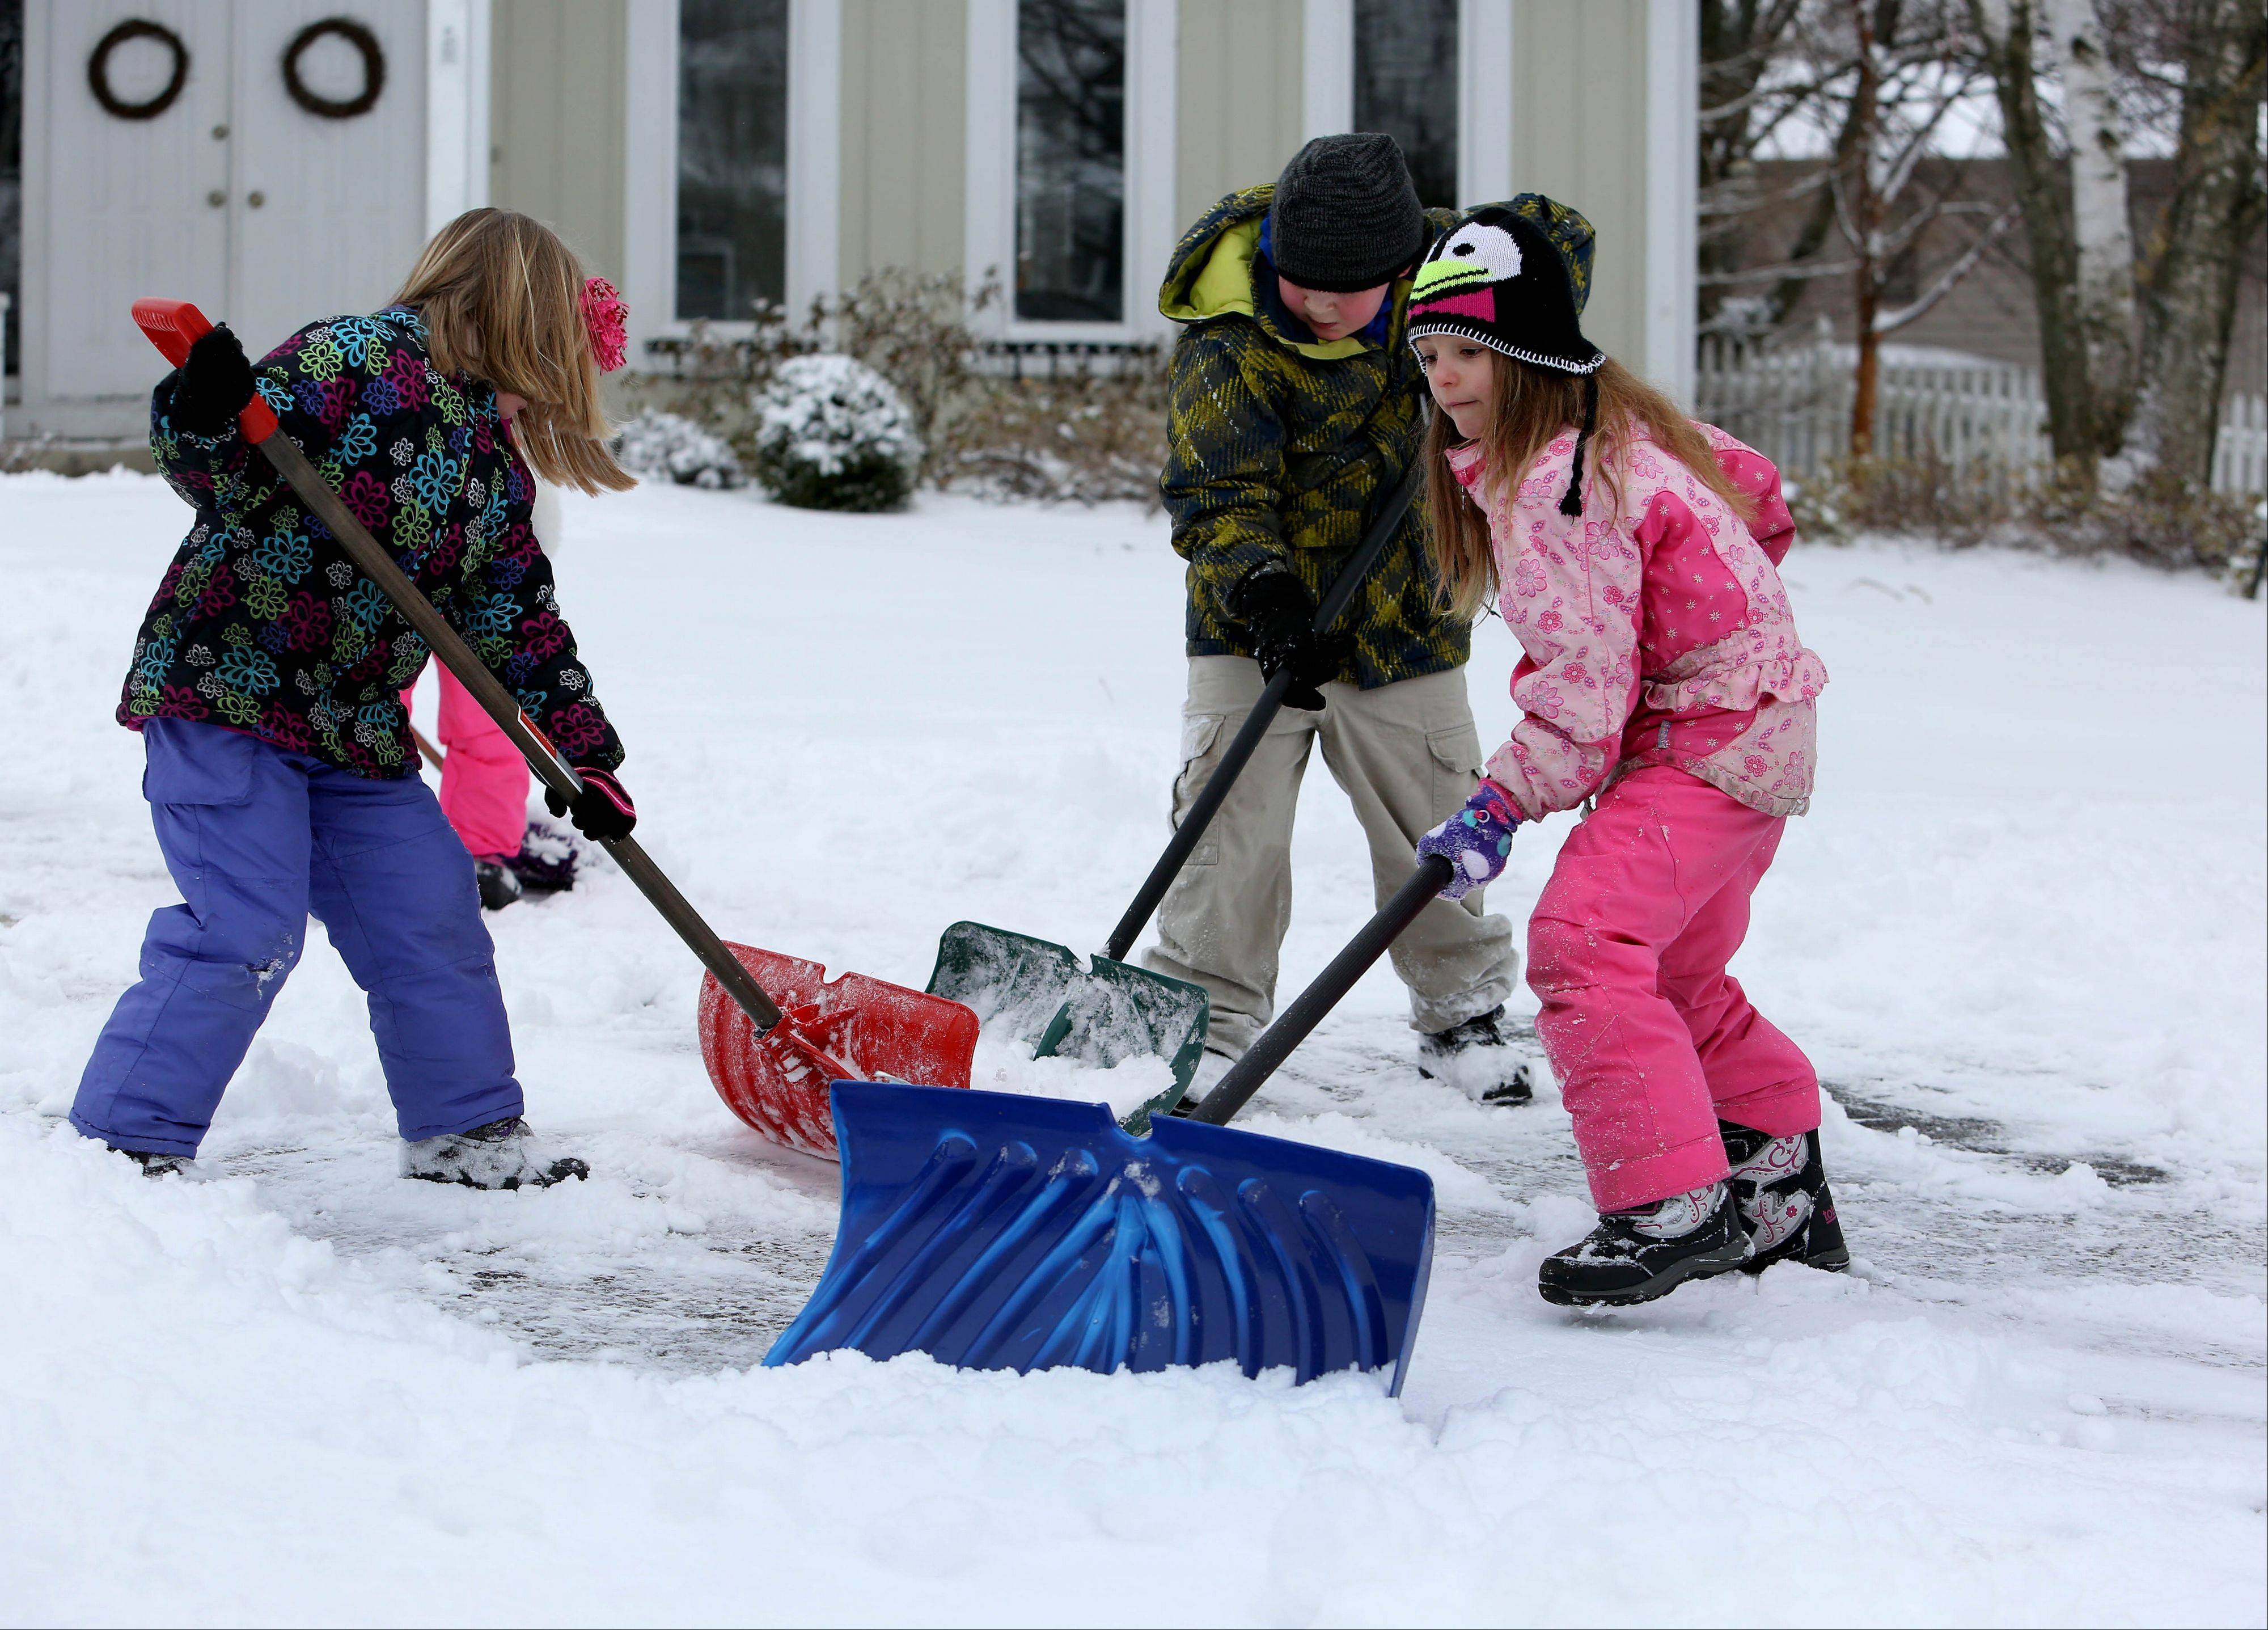 Left to right, Colette Knierin, 6, Cade Knierin, 9 and Lilly Berta, 6, work together to clear the driveway on Friday before school after an overnight snow in Naperville.